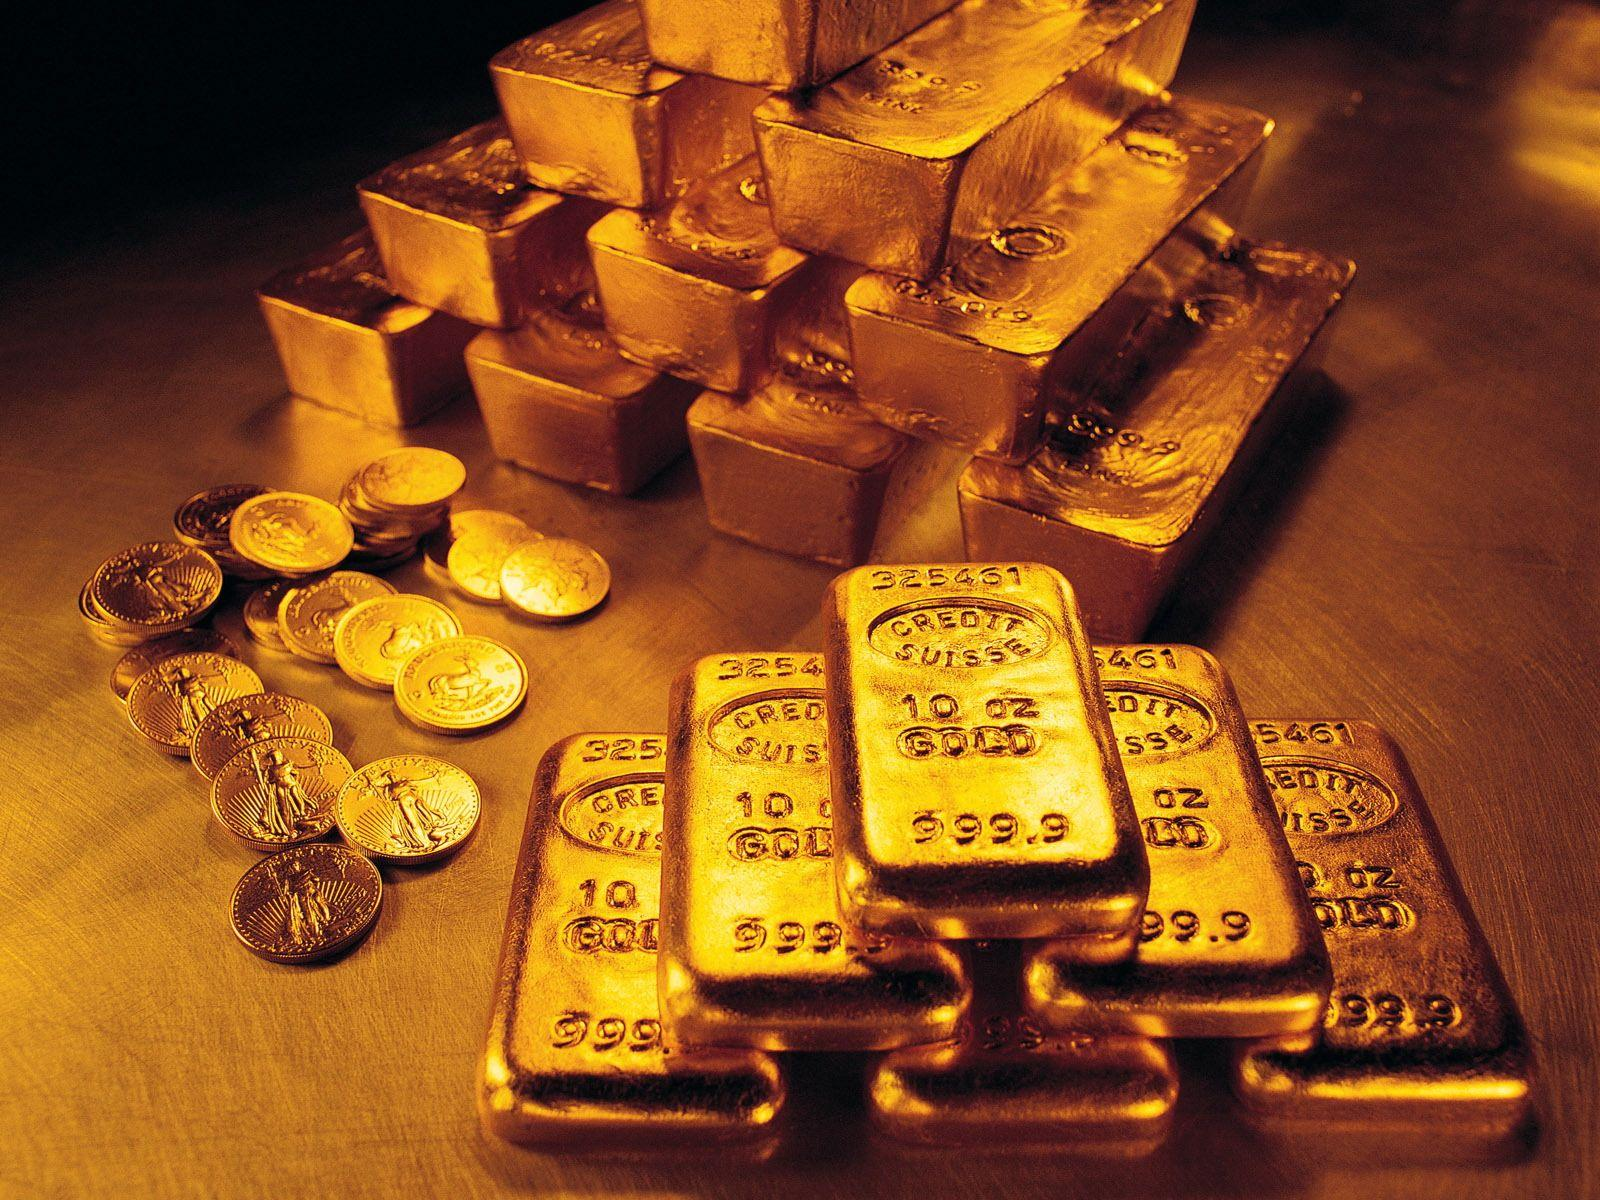 Gold Bars And Coins HD Wallpapers Stock Photos At